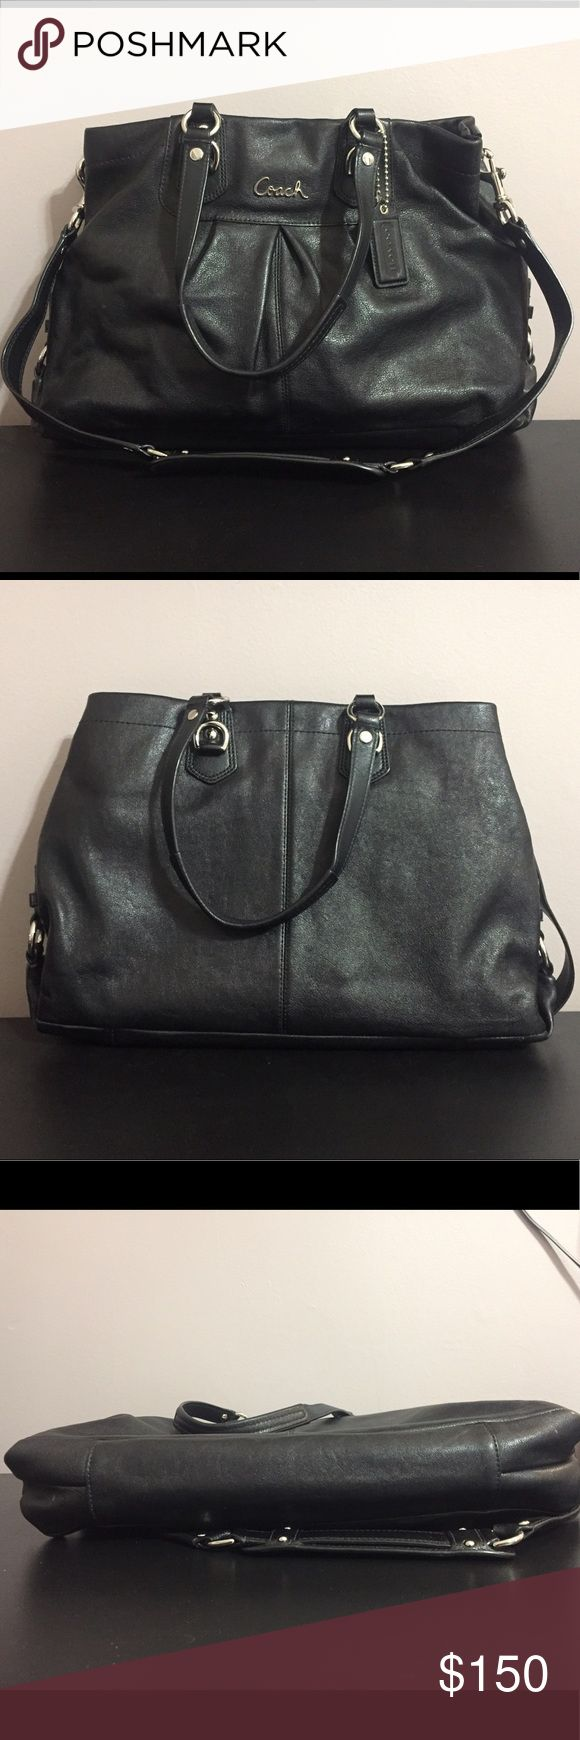 Coach Leather Purse with Removable Strap 🌟Great condition - very well taken care of and clean on the inside Leather Coach purse  🌟Big enough to fit a small laptop (as shown) or tablet 🌟Great for school or work or just everyday wear  🌟I'm including the dust bag I keep it in, but the dust bag is not Coach, it's Marc by Marc Jacobs Dust bag  💁🏻I am 5'2, 115 lb for reference. I wear small or xs and size 25 in jeans. Coach Bags Shoulder Bags